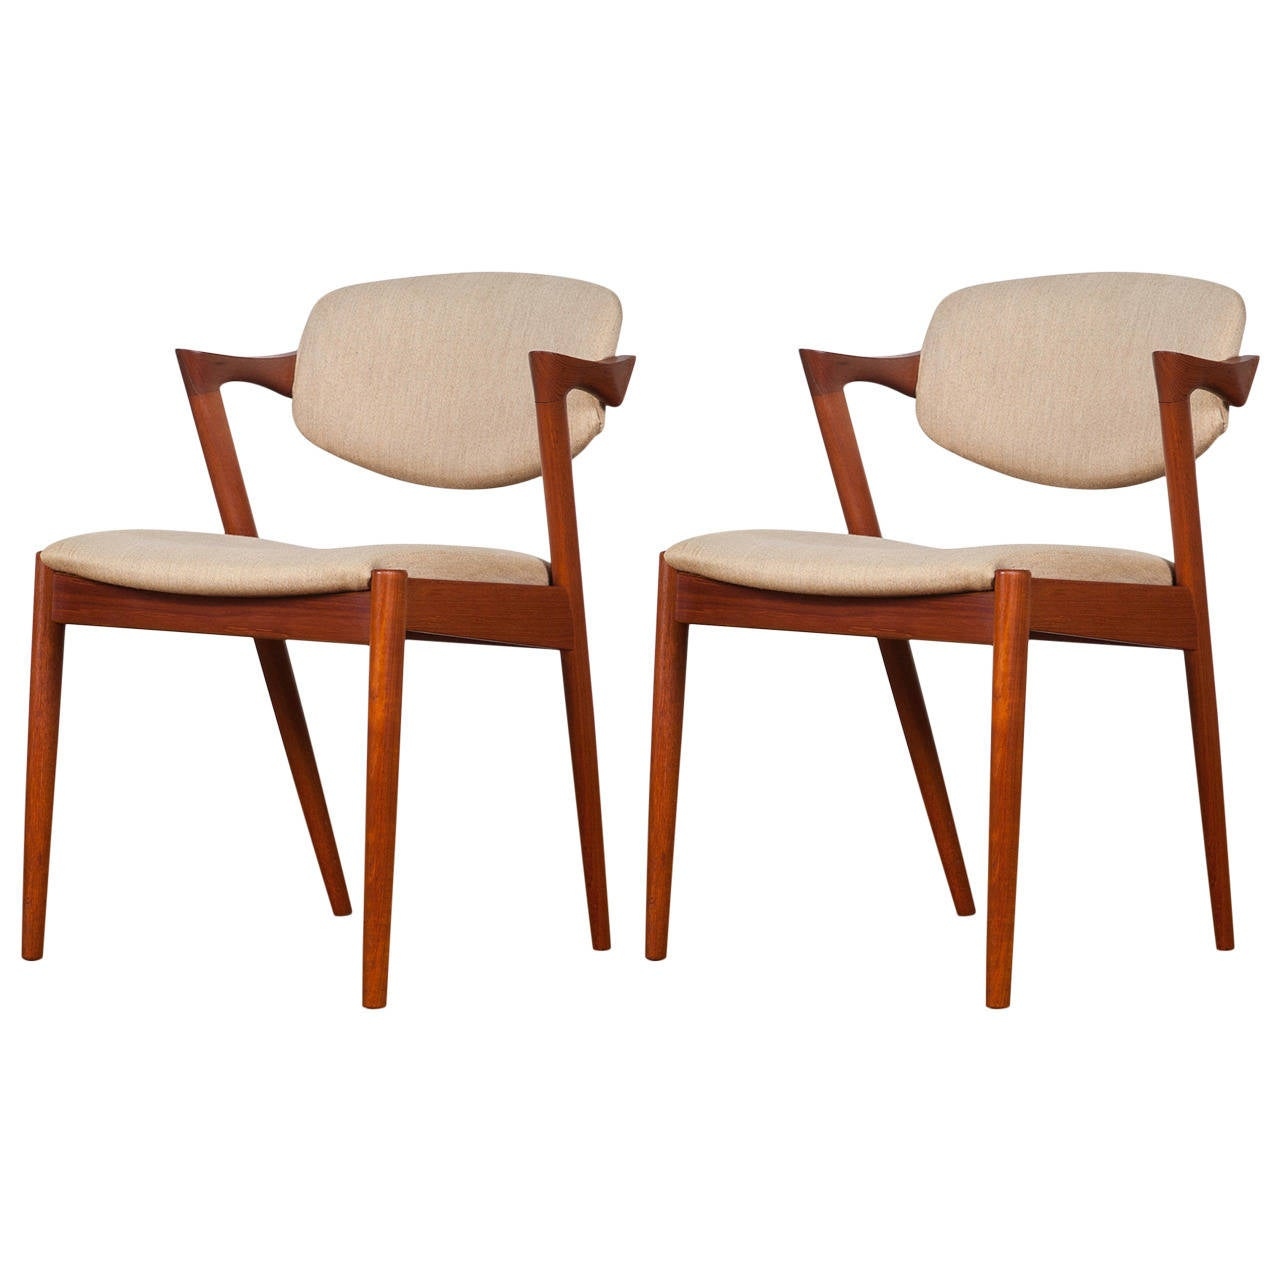 Pair of mid century danish model 42 teak dining chairs by kai kristiansen for sale at 1stdibs - Kai kristiansen chairs ...